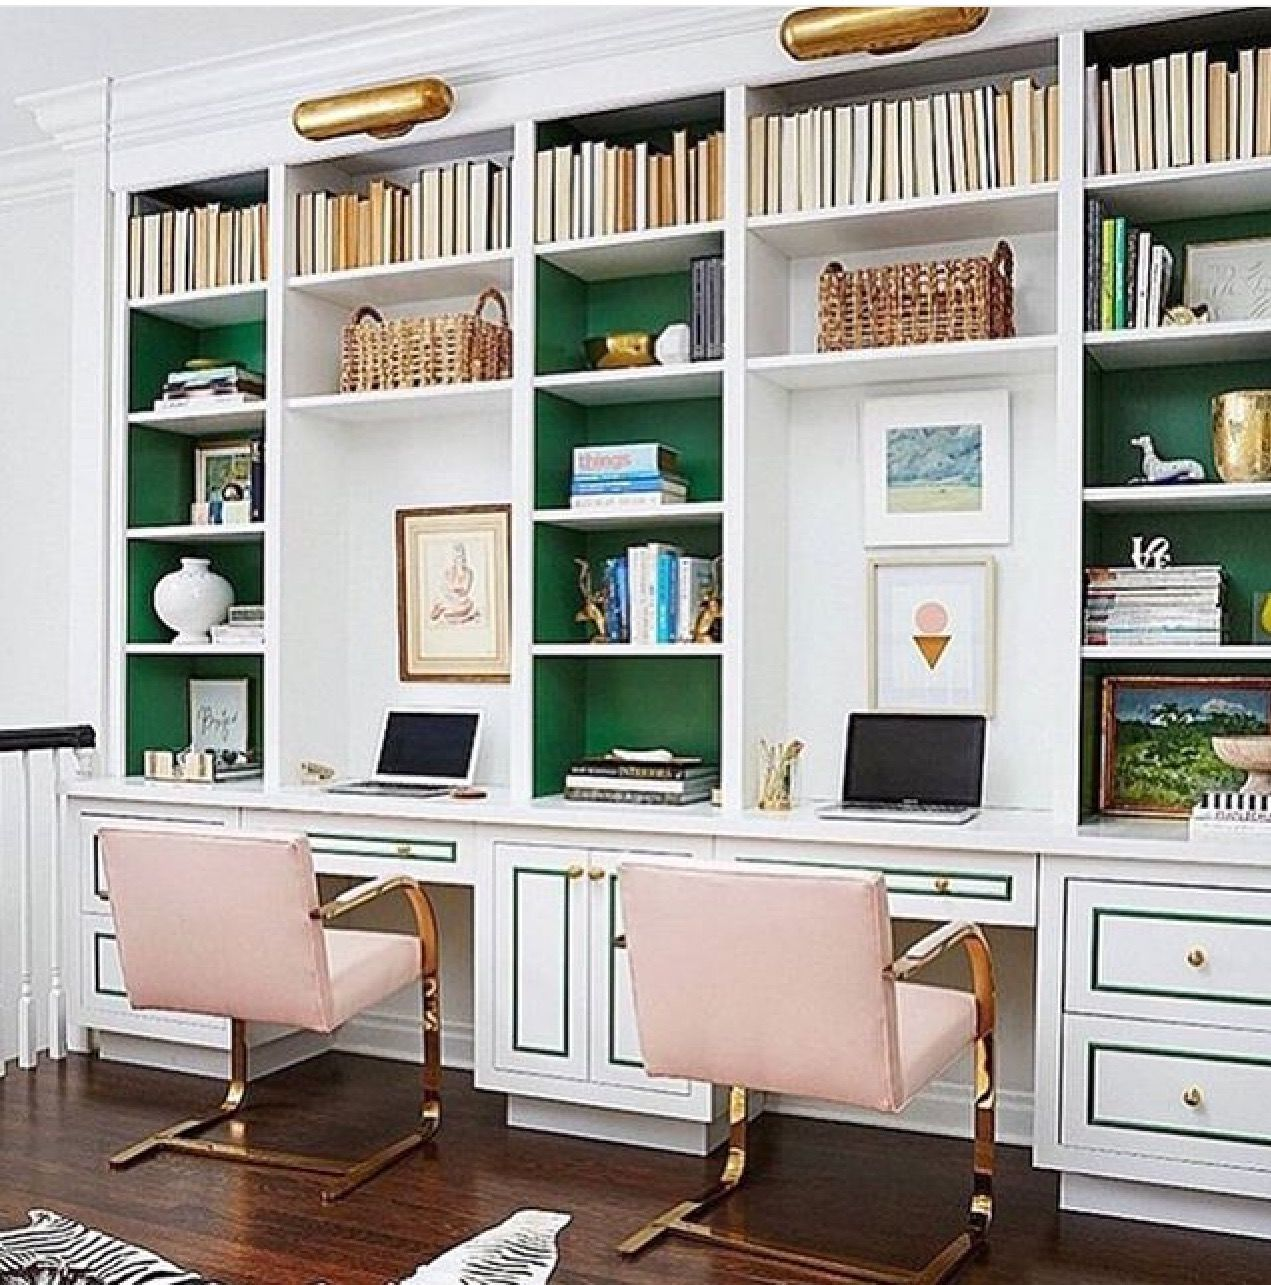 Endearing Home Office Built Ins Of Pop Of Green, Painted